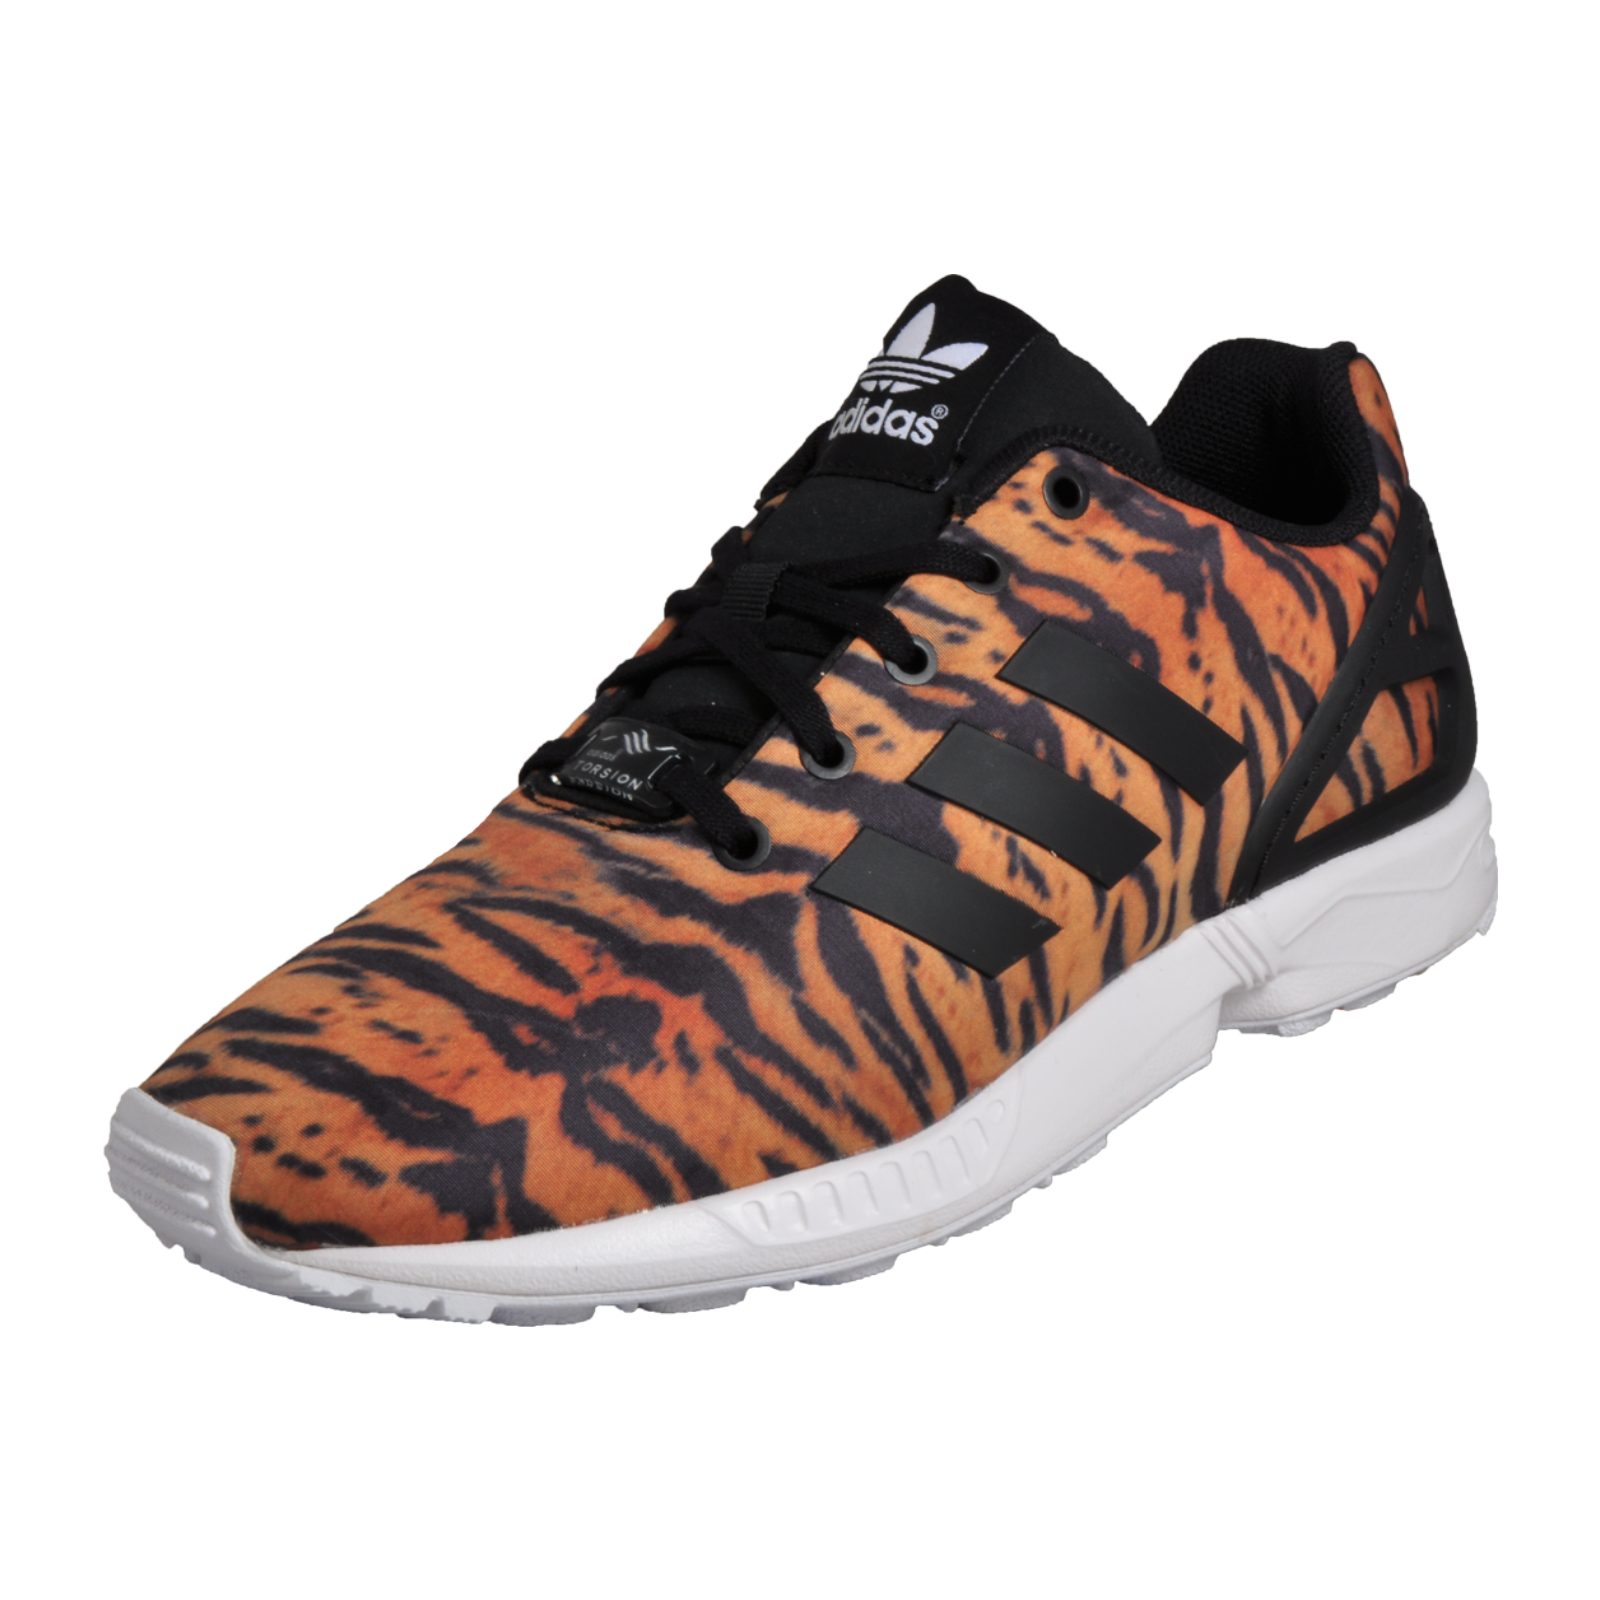 brand new 0e64e a3307 Details about Adidas Originals ZX Flux Kids Uni Classic Casual Animal Print  Trainers. Popular Item